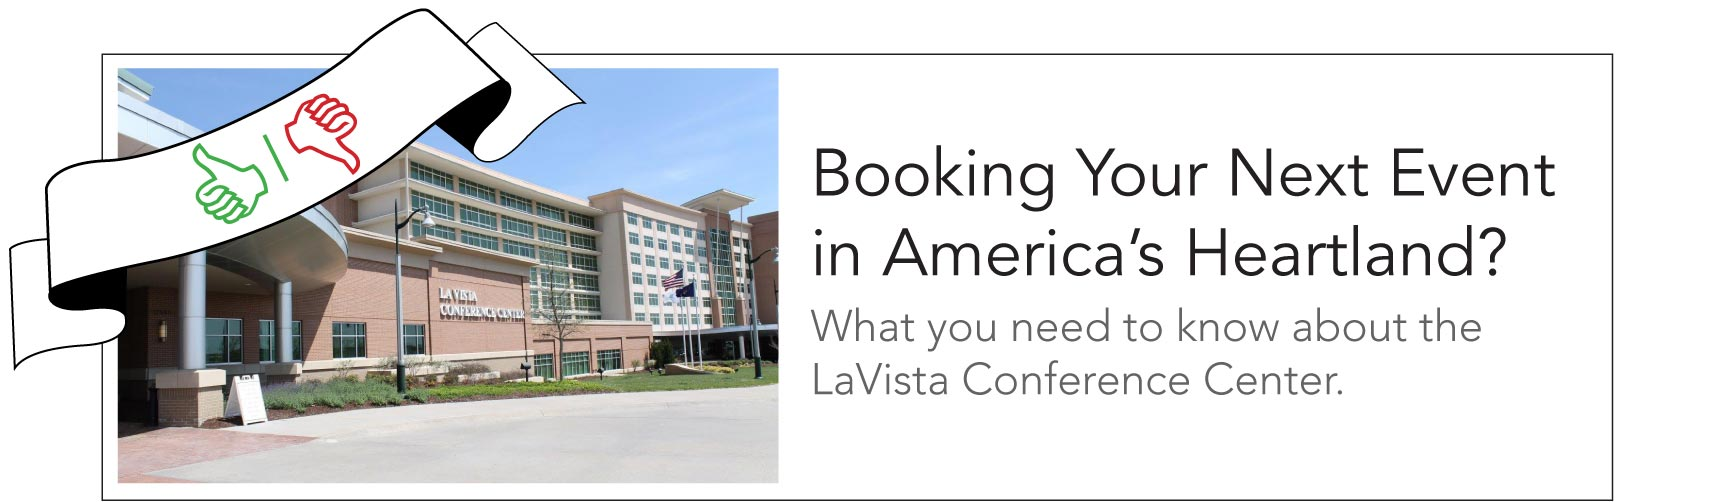 Booking Your Next Event in America's Heartland? - Meetings ...